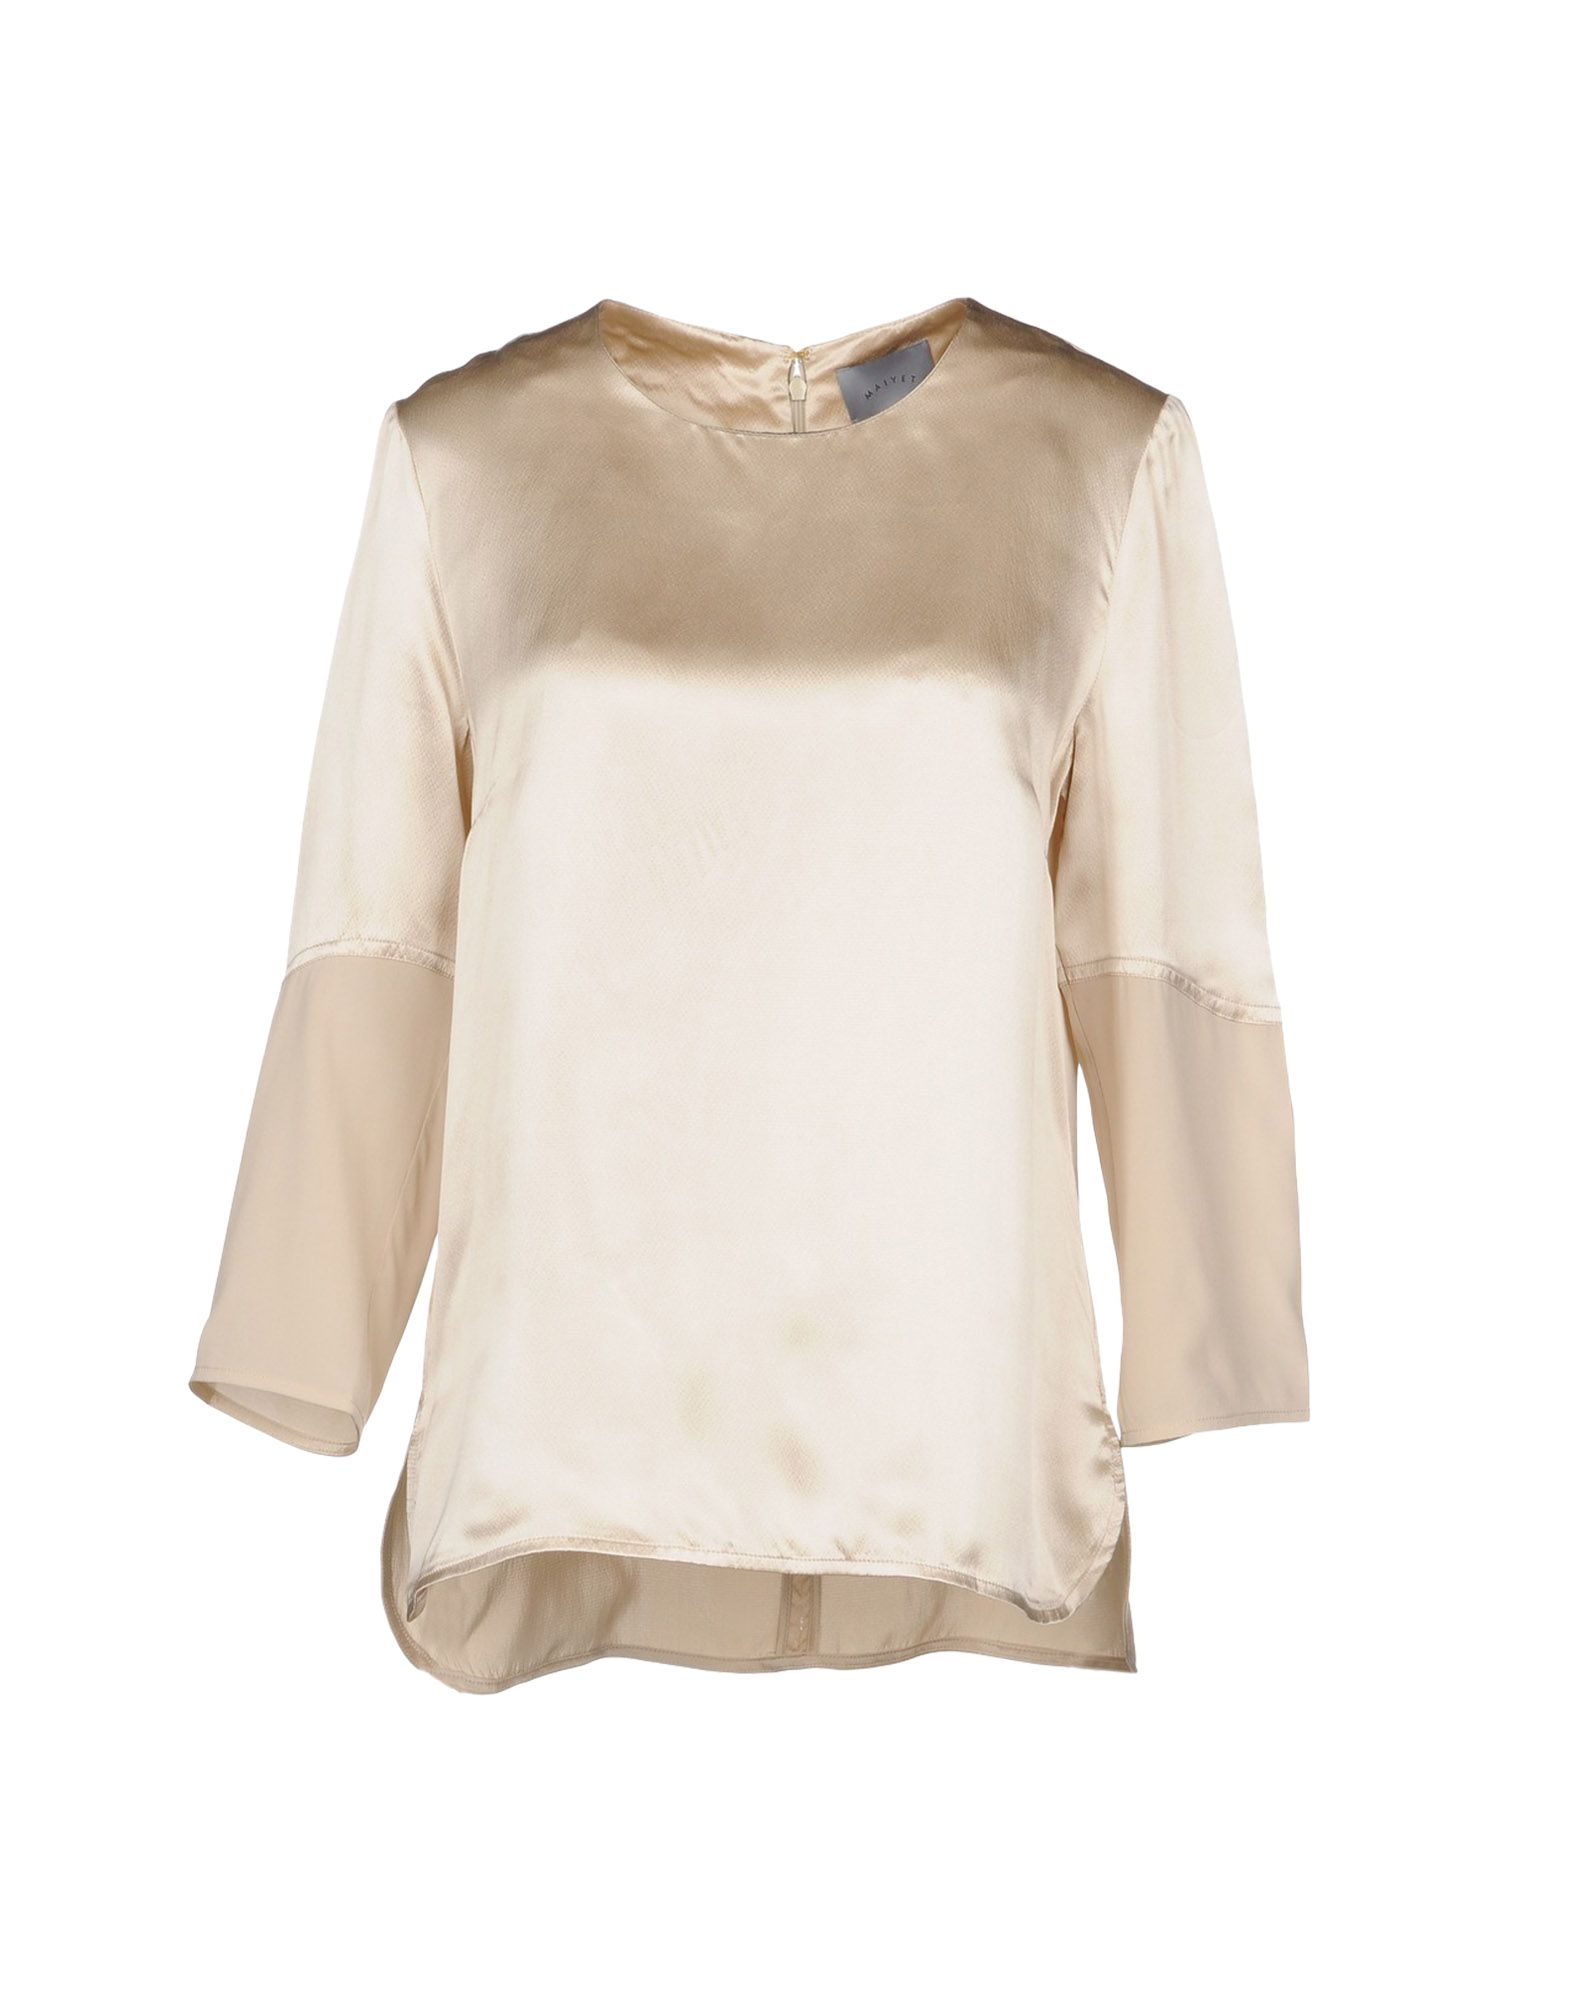 MAIYET Blouse in Dove Grey